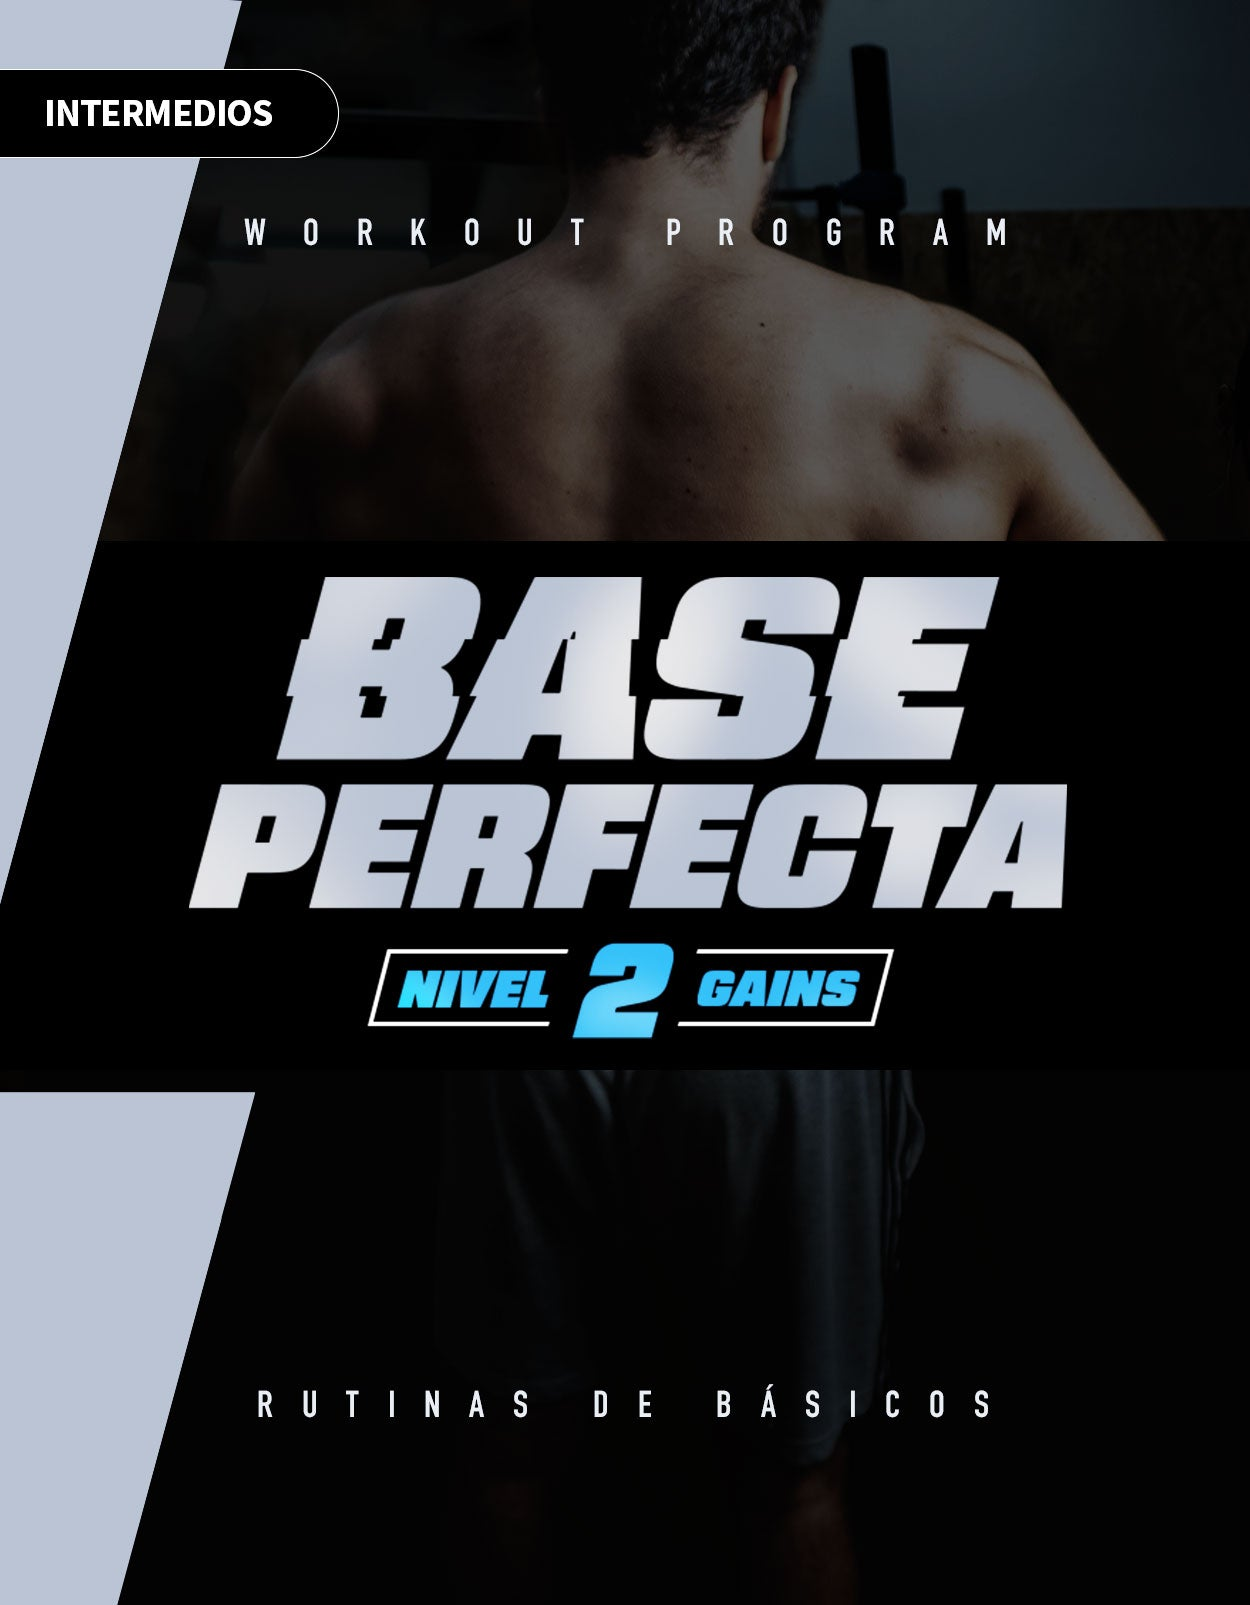 Base Perfecta - Rutinas de básicos Nivel 2  - Intermedios